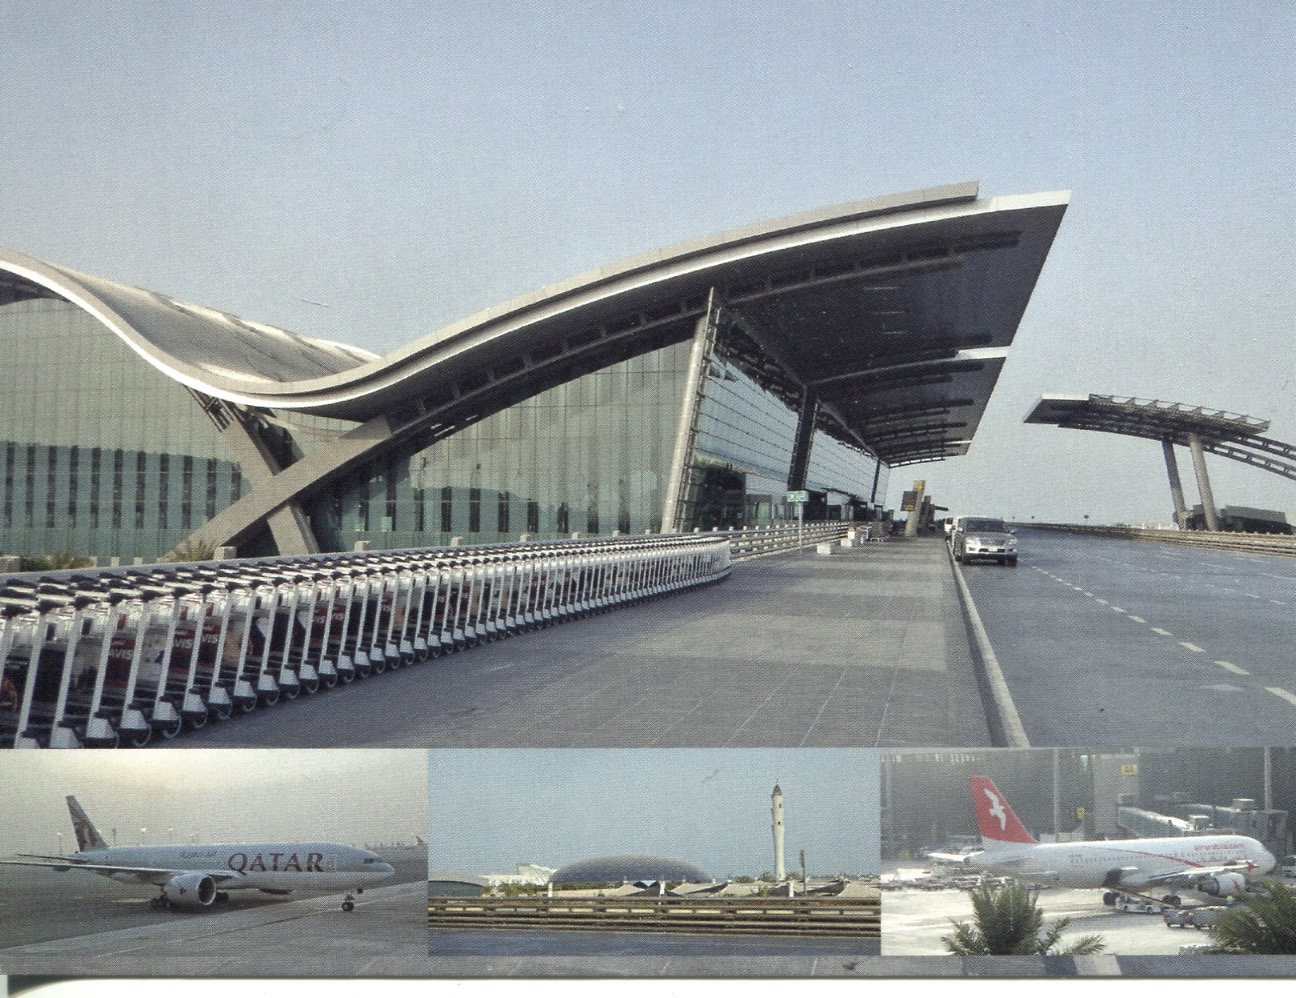 Qatar Airport - Doha International Airport